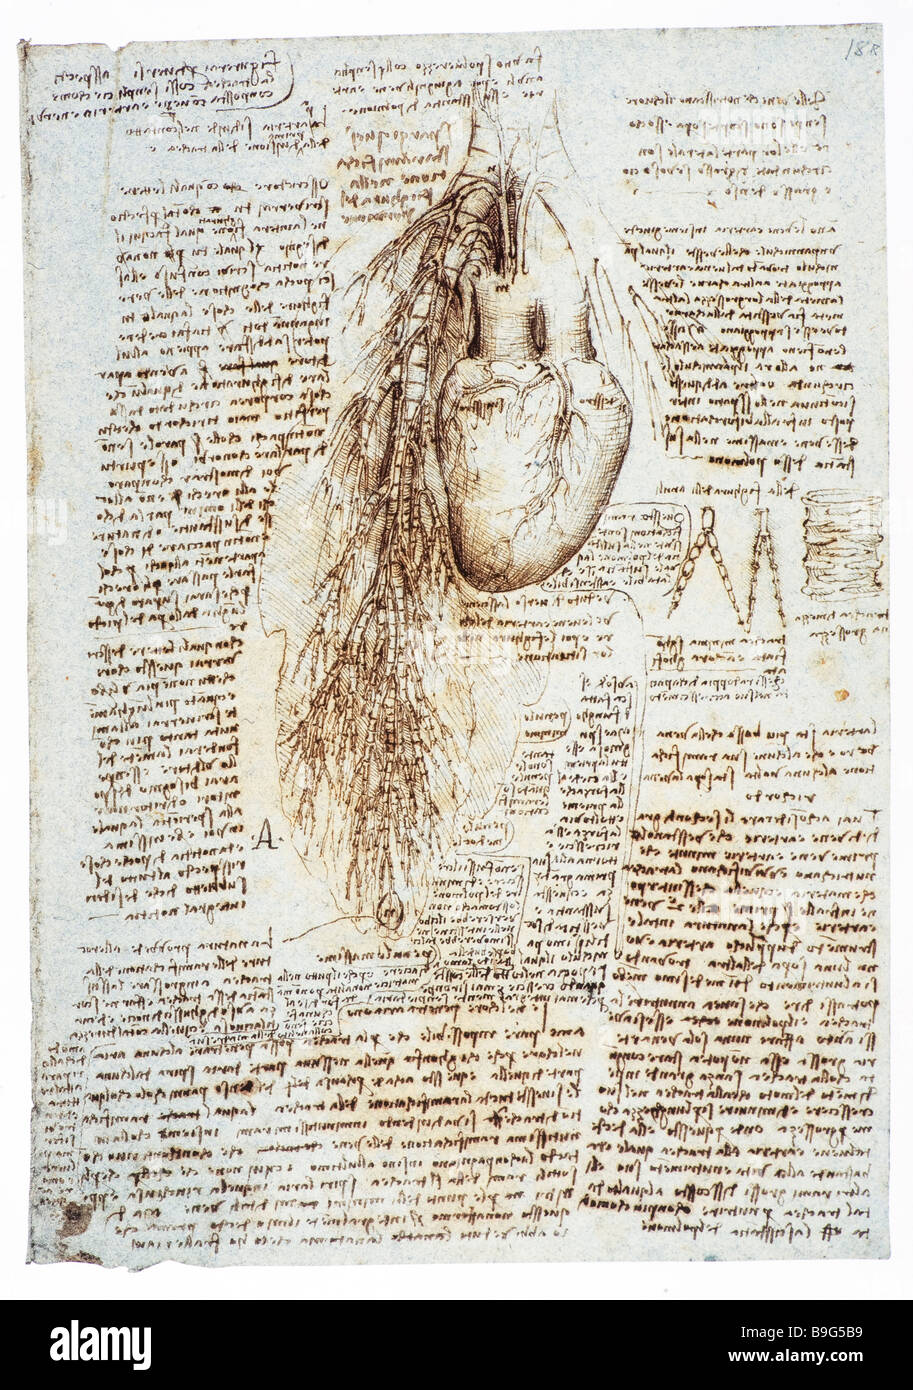 anatomical drawing of lungs and heart by Leonardo da Vinci  1513 - Stock Image